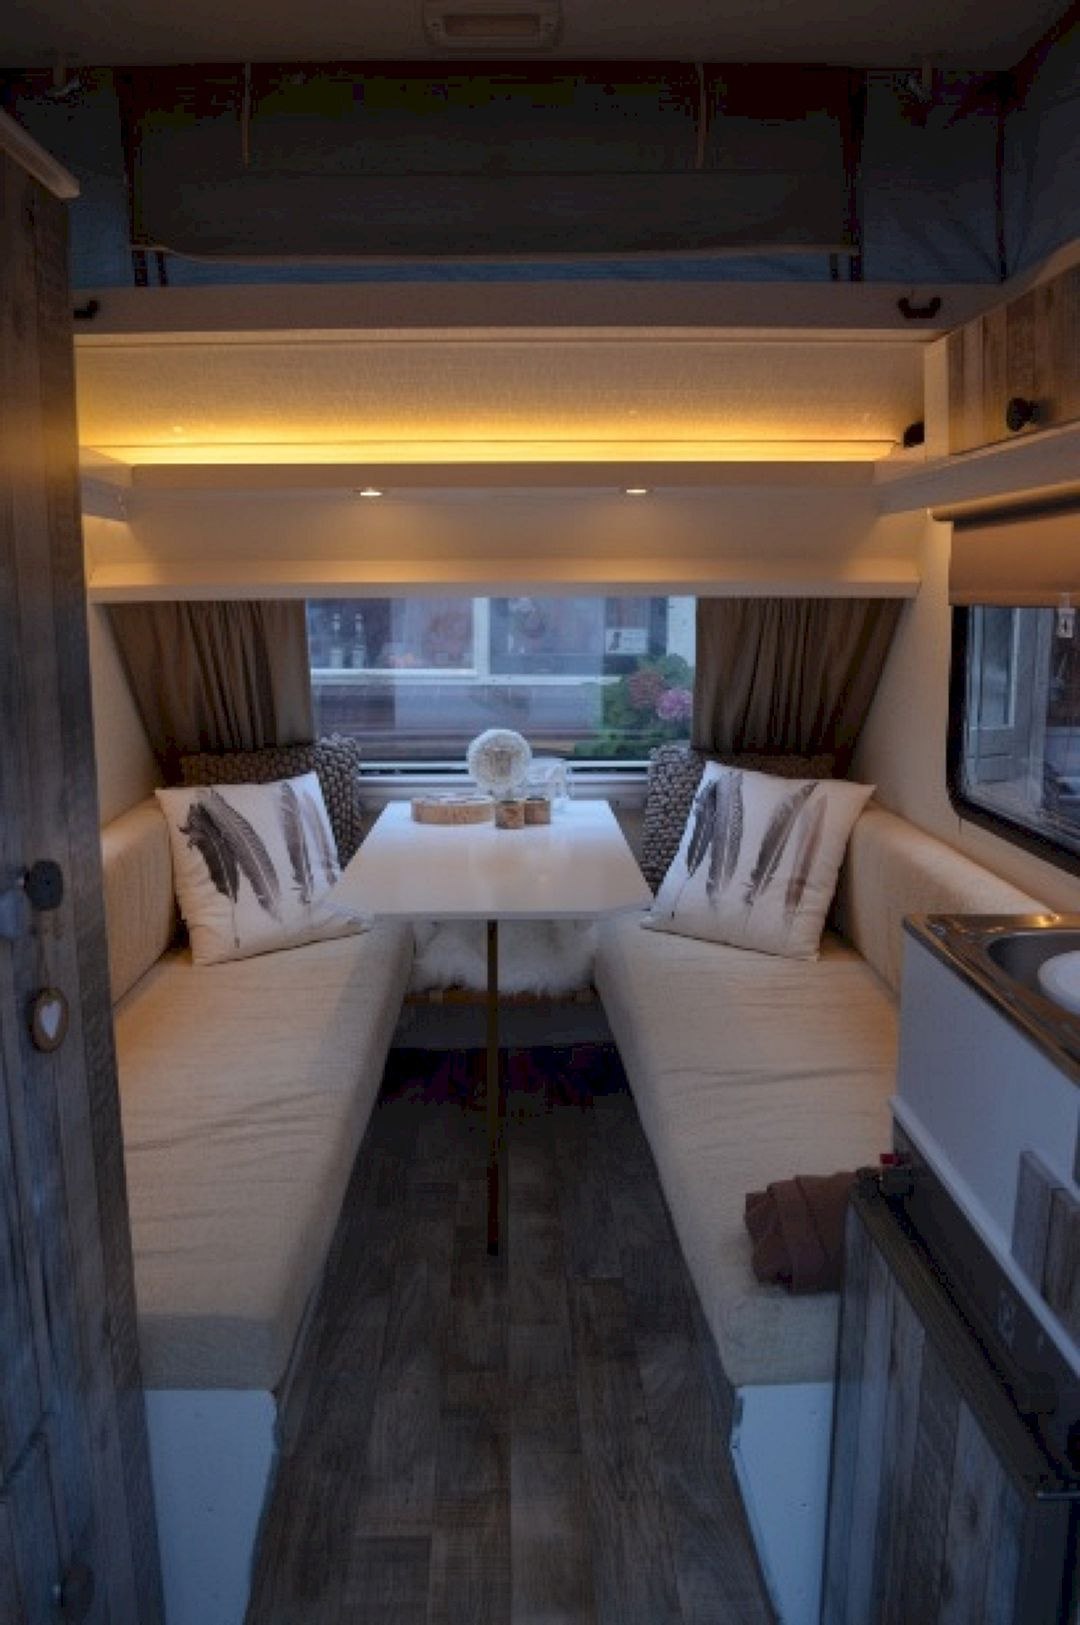 Wohnwagen Umbau Ideen Top 15 Diy Camper Interior Remodel Ideas You Can Try Right Now